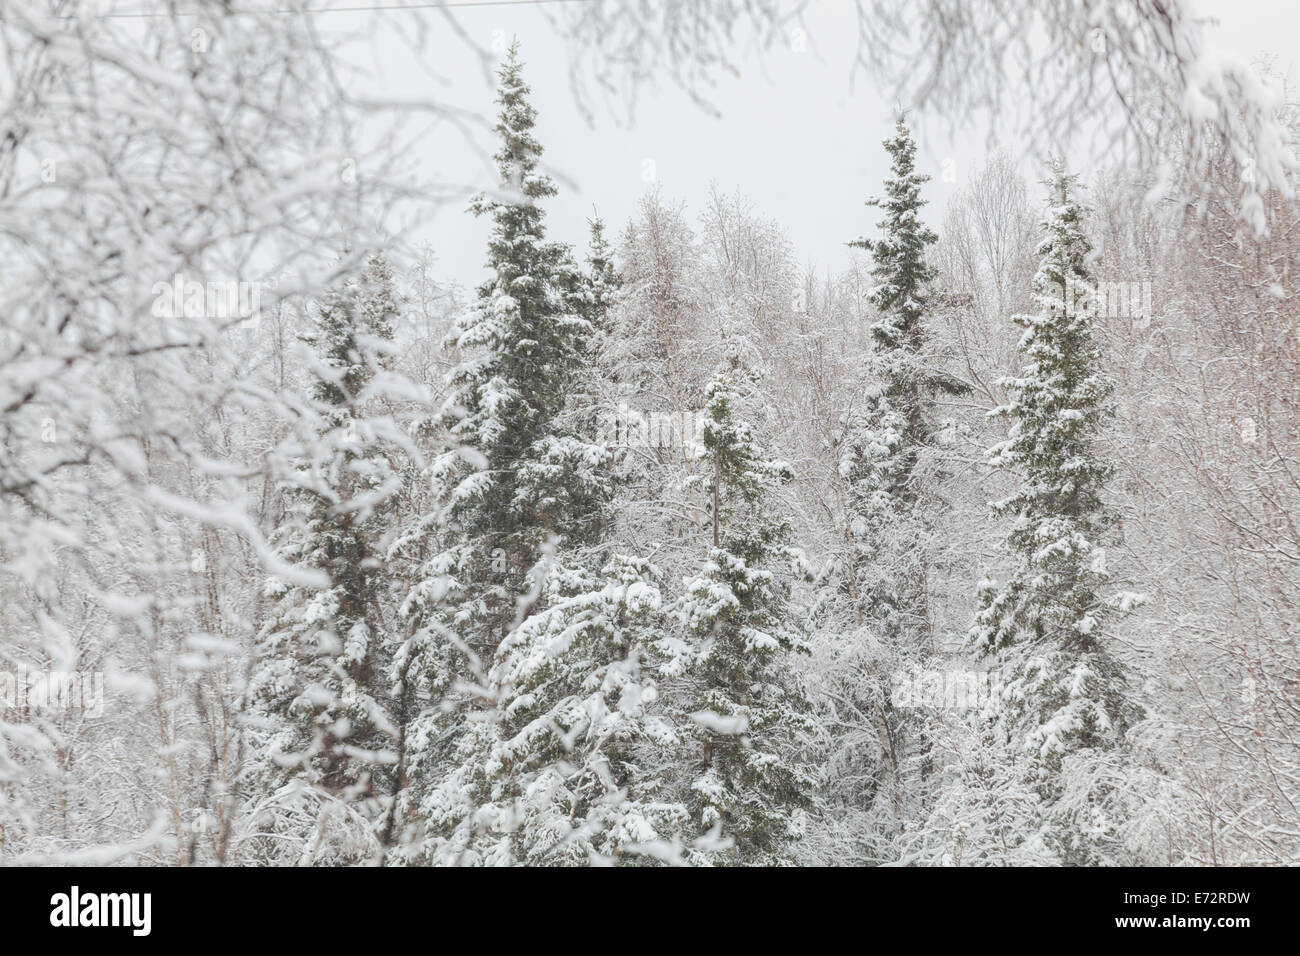 Mixed conifer and birch tree (Betula sp.) forest in winter in Chugiak, Alaska. - Stock Image